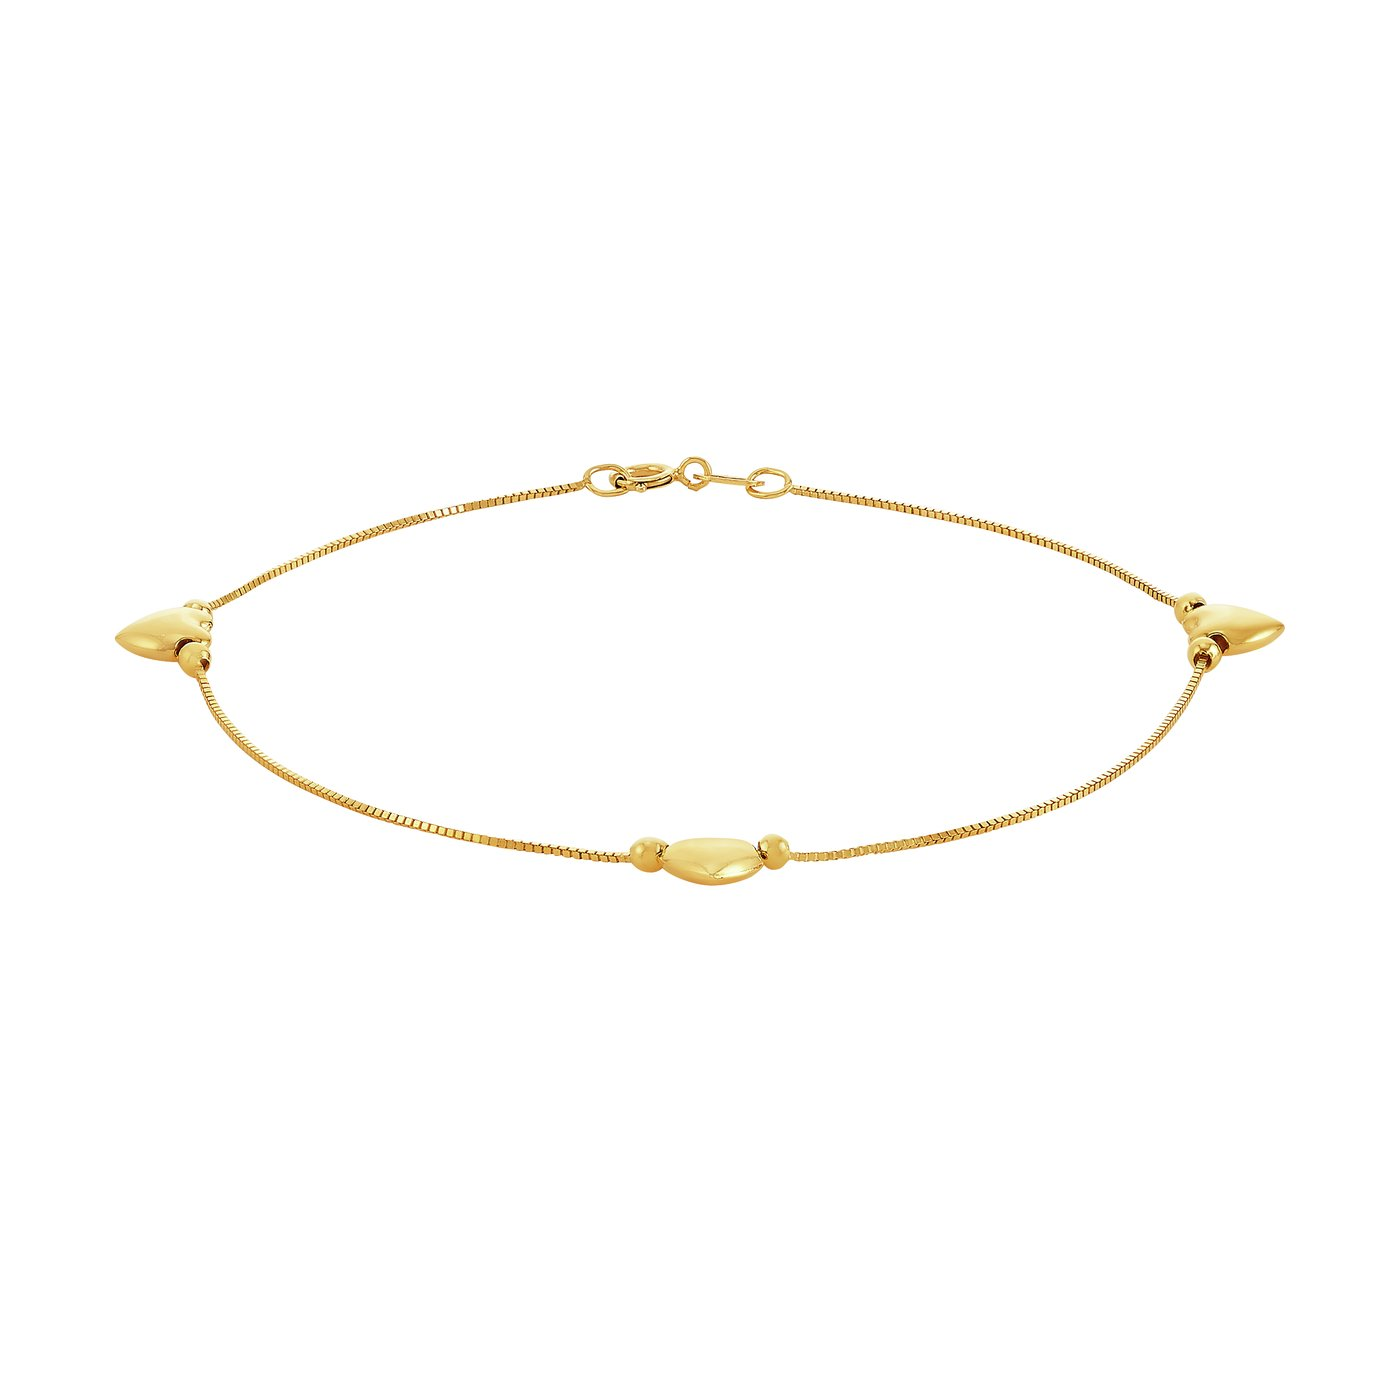 Revere 9ct Gold Box Chain with Heart Charms Bracelet